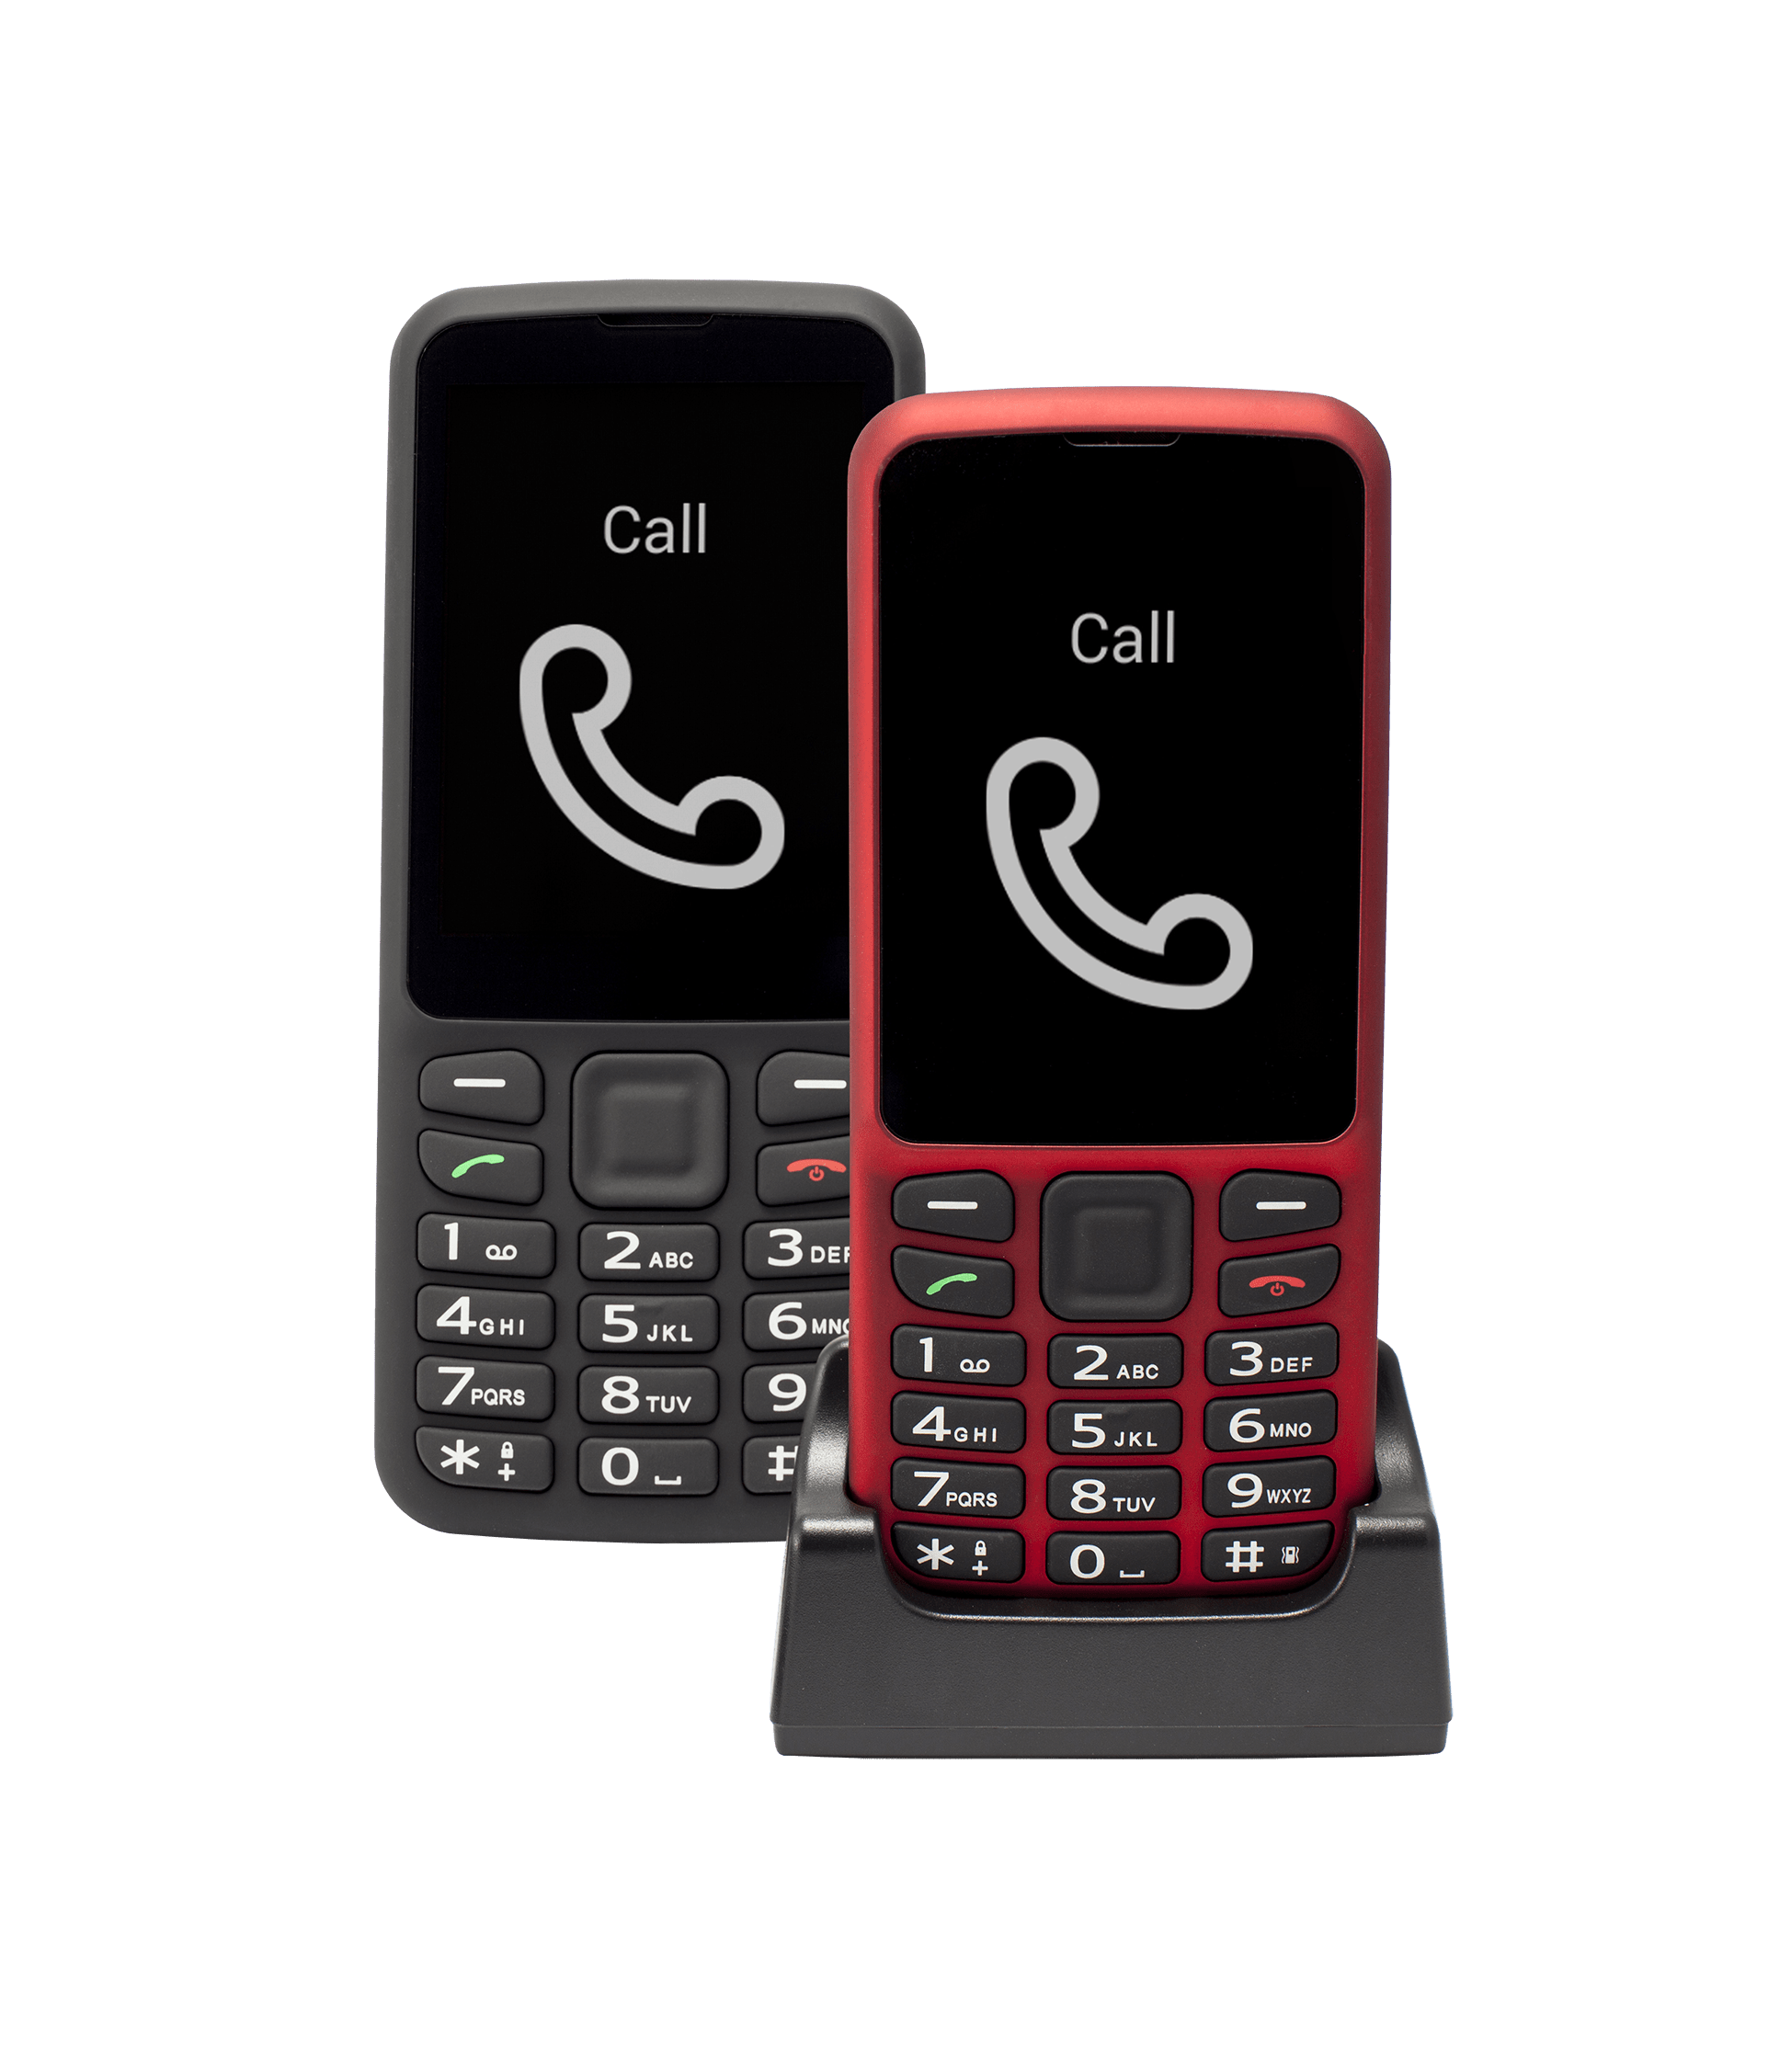 Picture of Blindshell Classic mobile phone